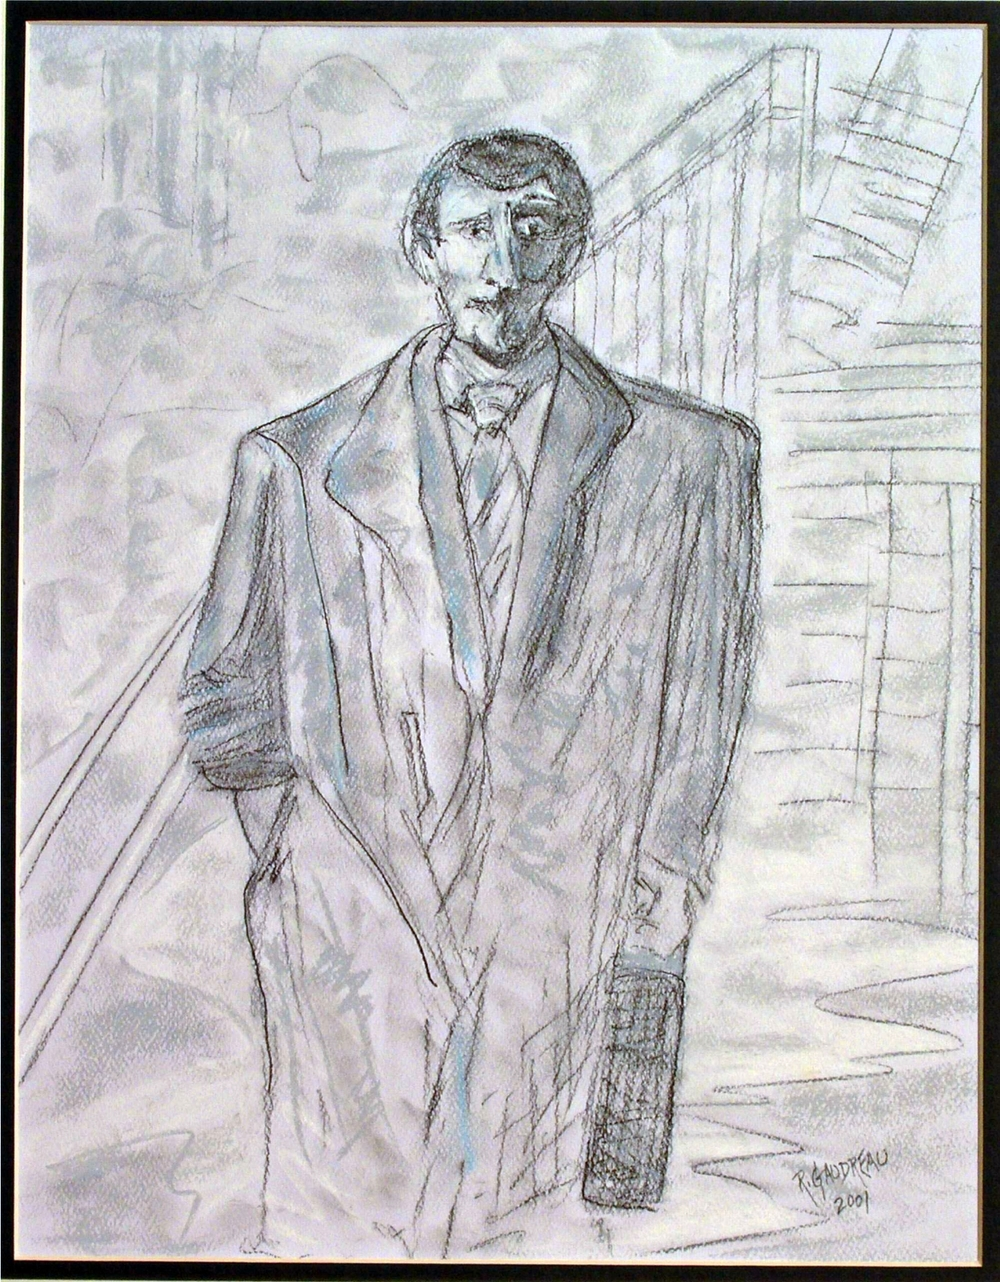 Man with the Suitcase(sketch)    2001 pastel, charcoal on paper 14 x 11 inches